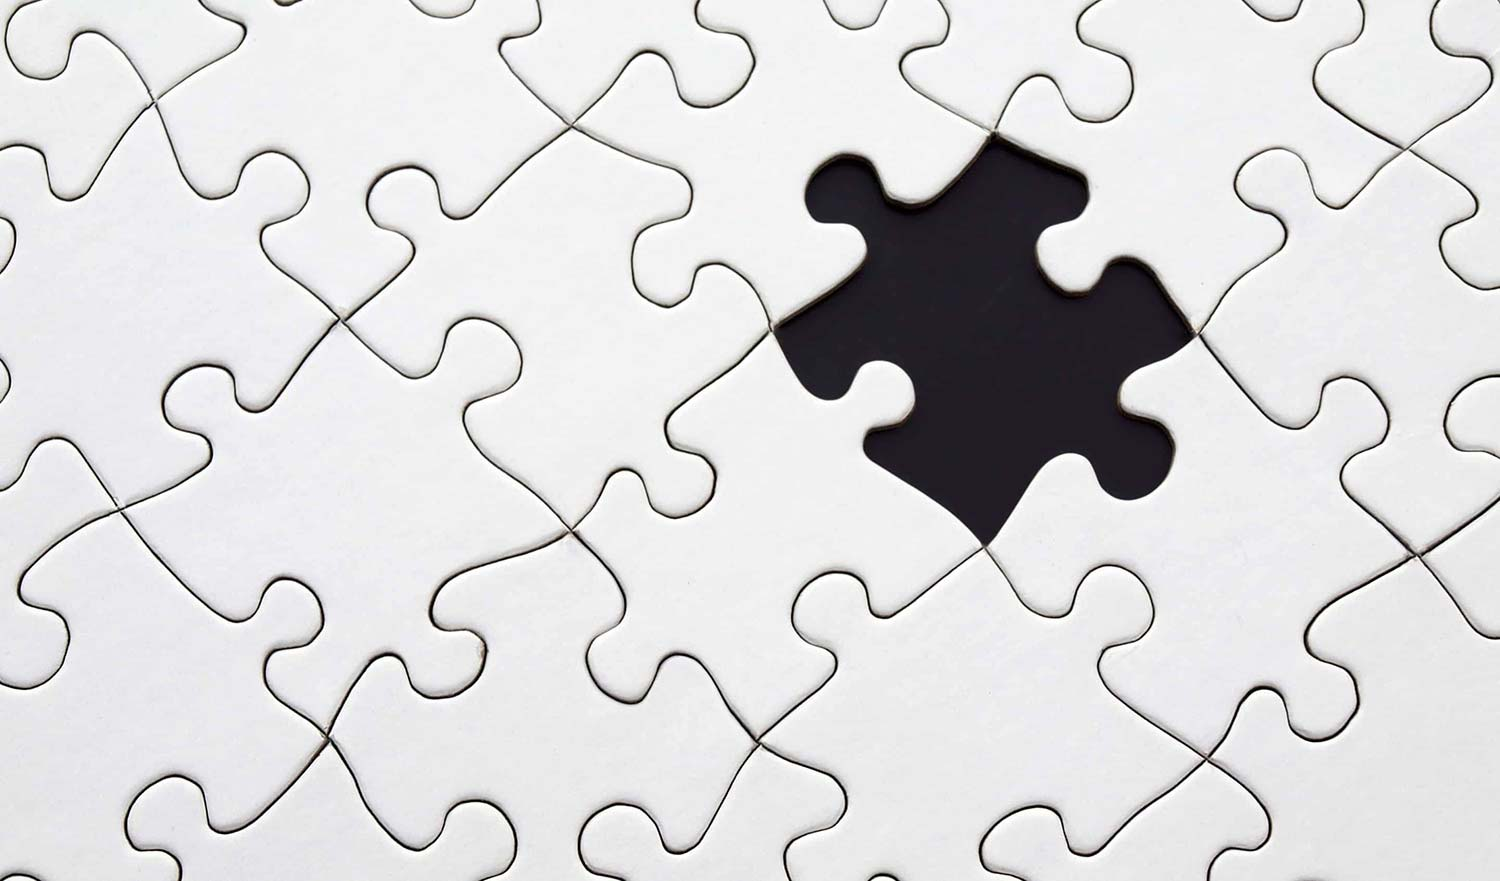 Puzzle pieces signifying systems integrations